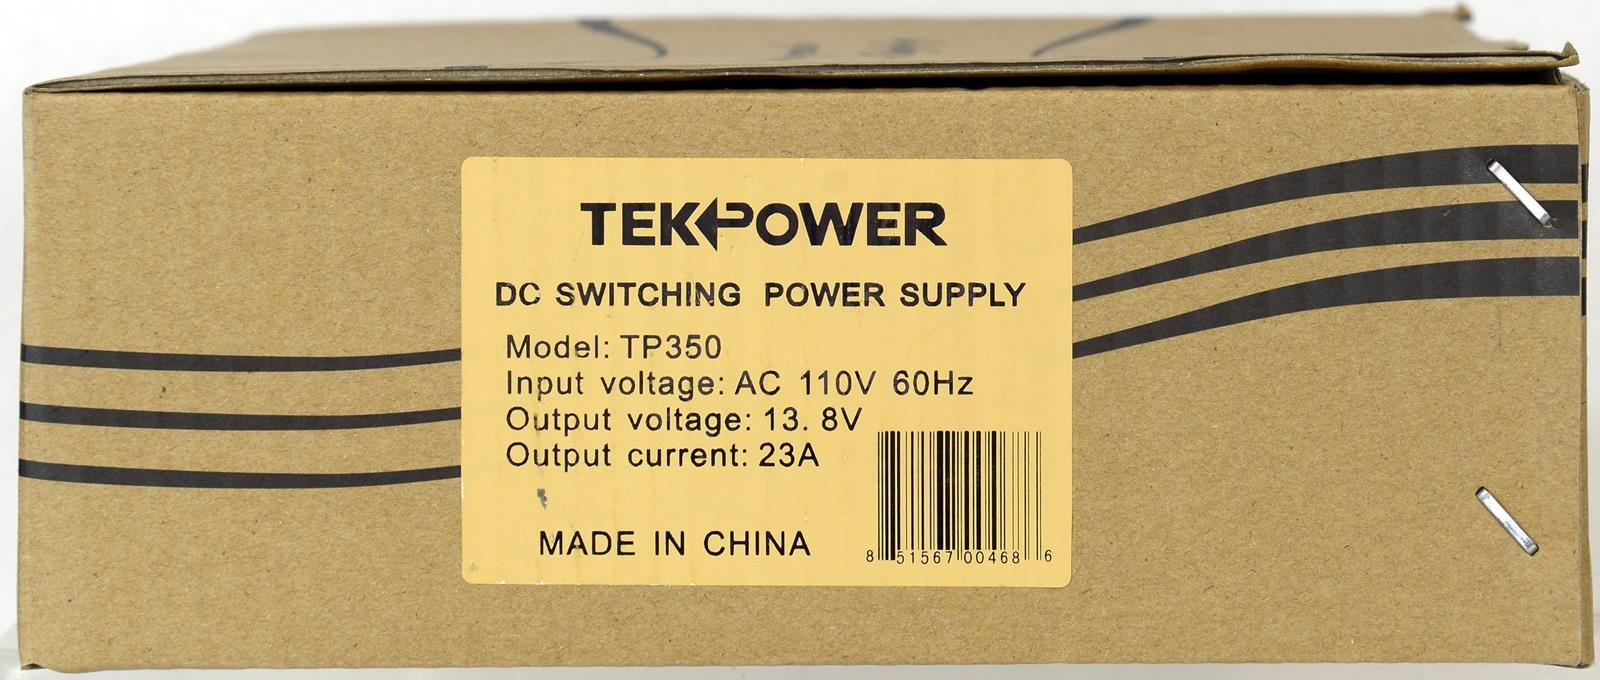 TekPower TP350 23 Amp DC 13.8V Switching Power Supply with Cigarette Plug by Tekpower (Image #5)